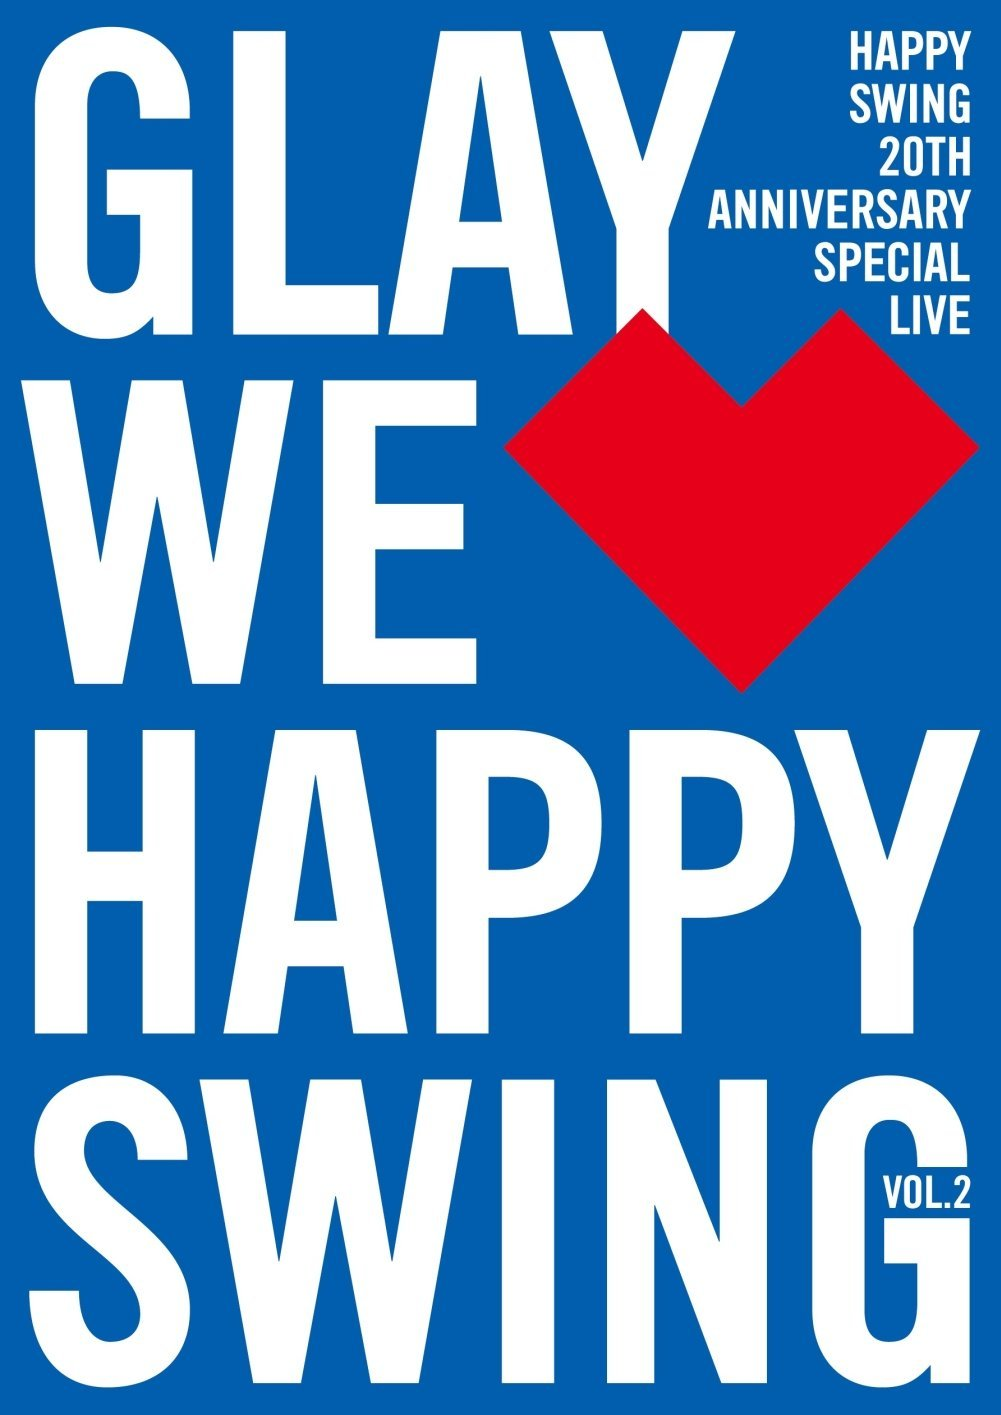 グレイ の DVD 【通常盤】HAPPY SWING 20th Anniversary SPECIAL LIVE 〜WeHappy Swing〜 Vol.2